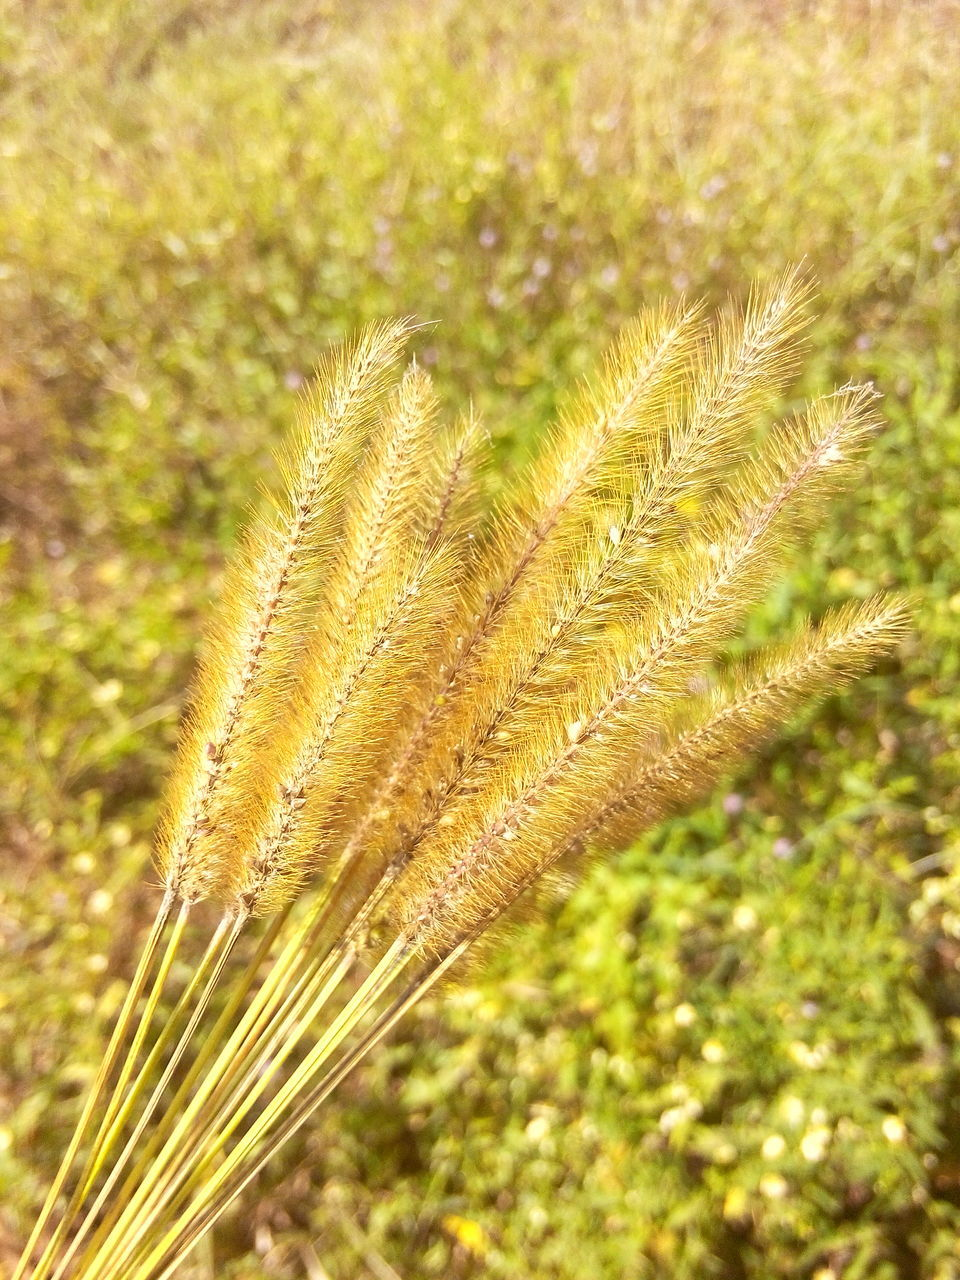 growth, nature, plant, no people, day, beauty in nature, green color, outdoors, field, close-up, focus on foreground, tranquility, fragility, freshness, wheat, grass, cereal plant